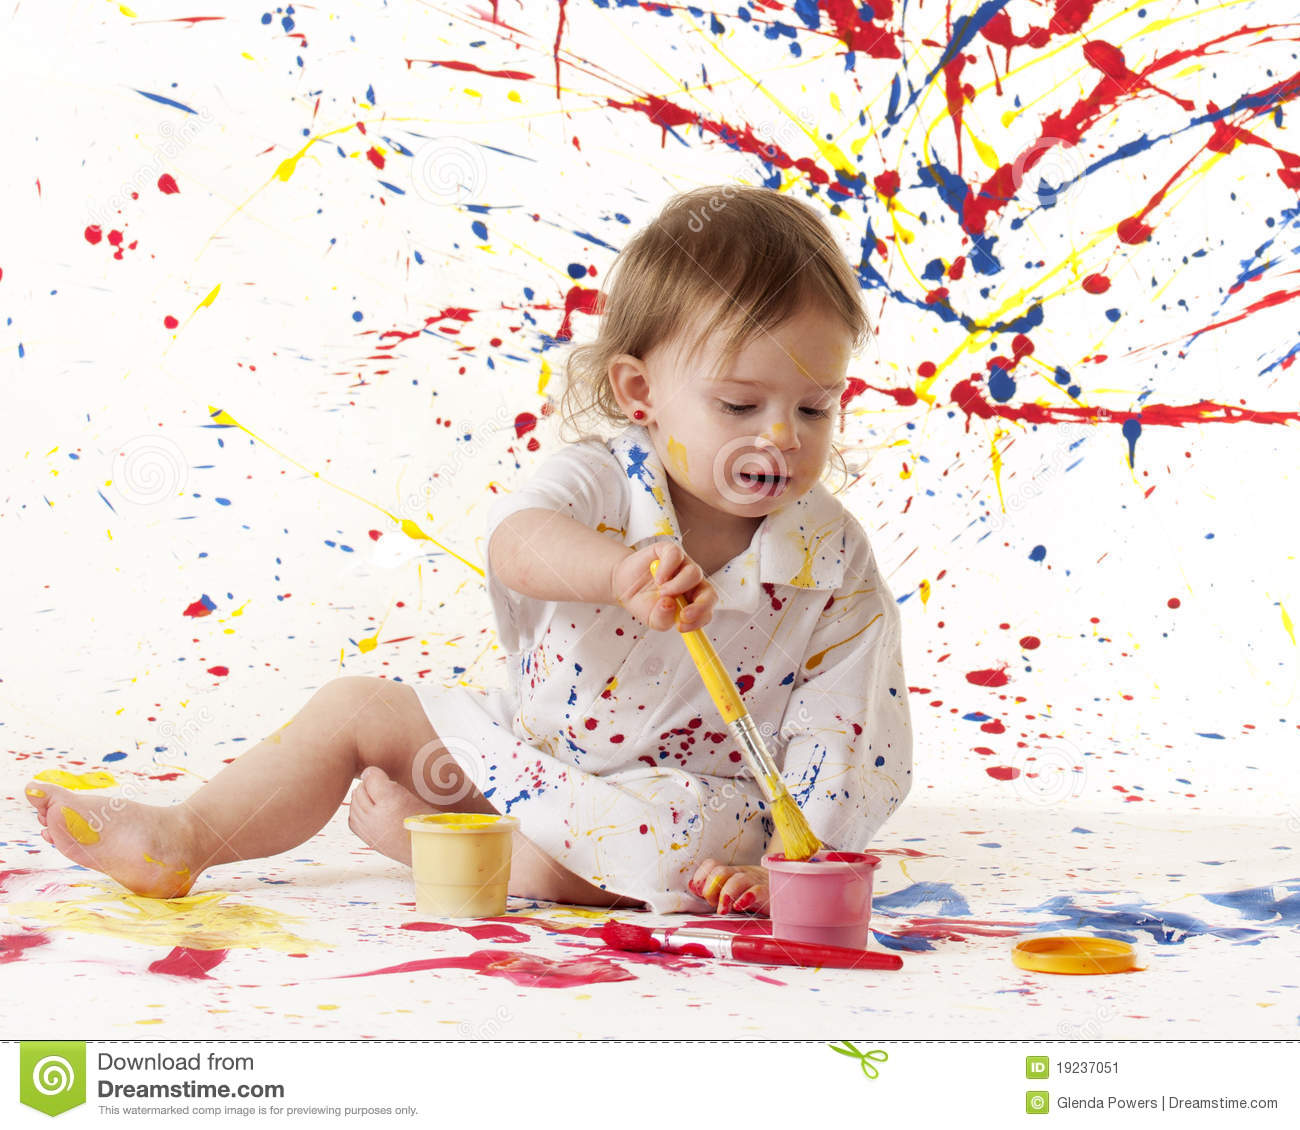 An adorable baby girl painting against a splattered paint background